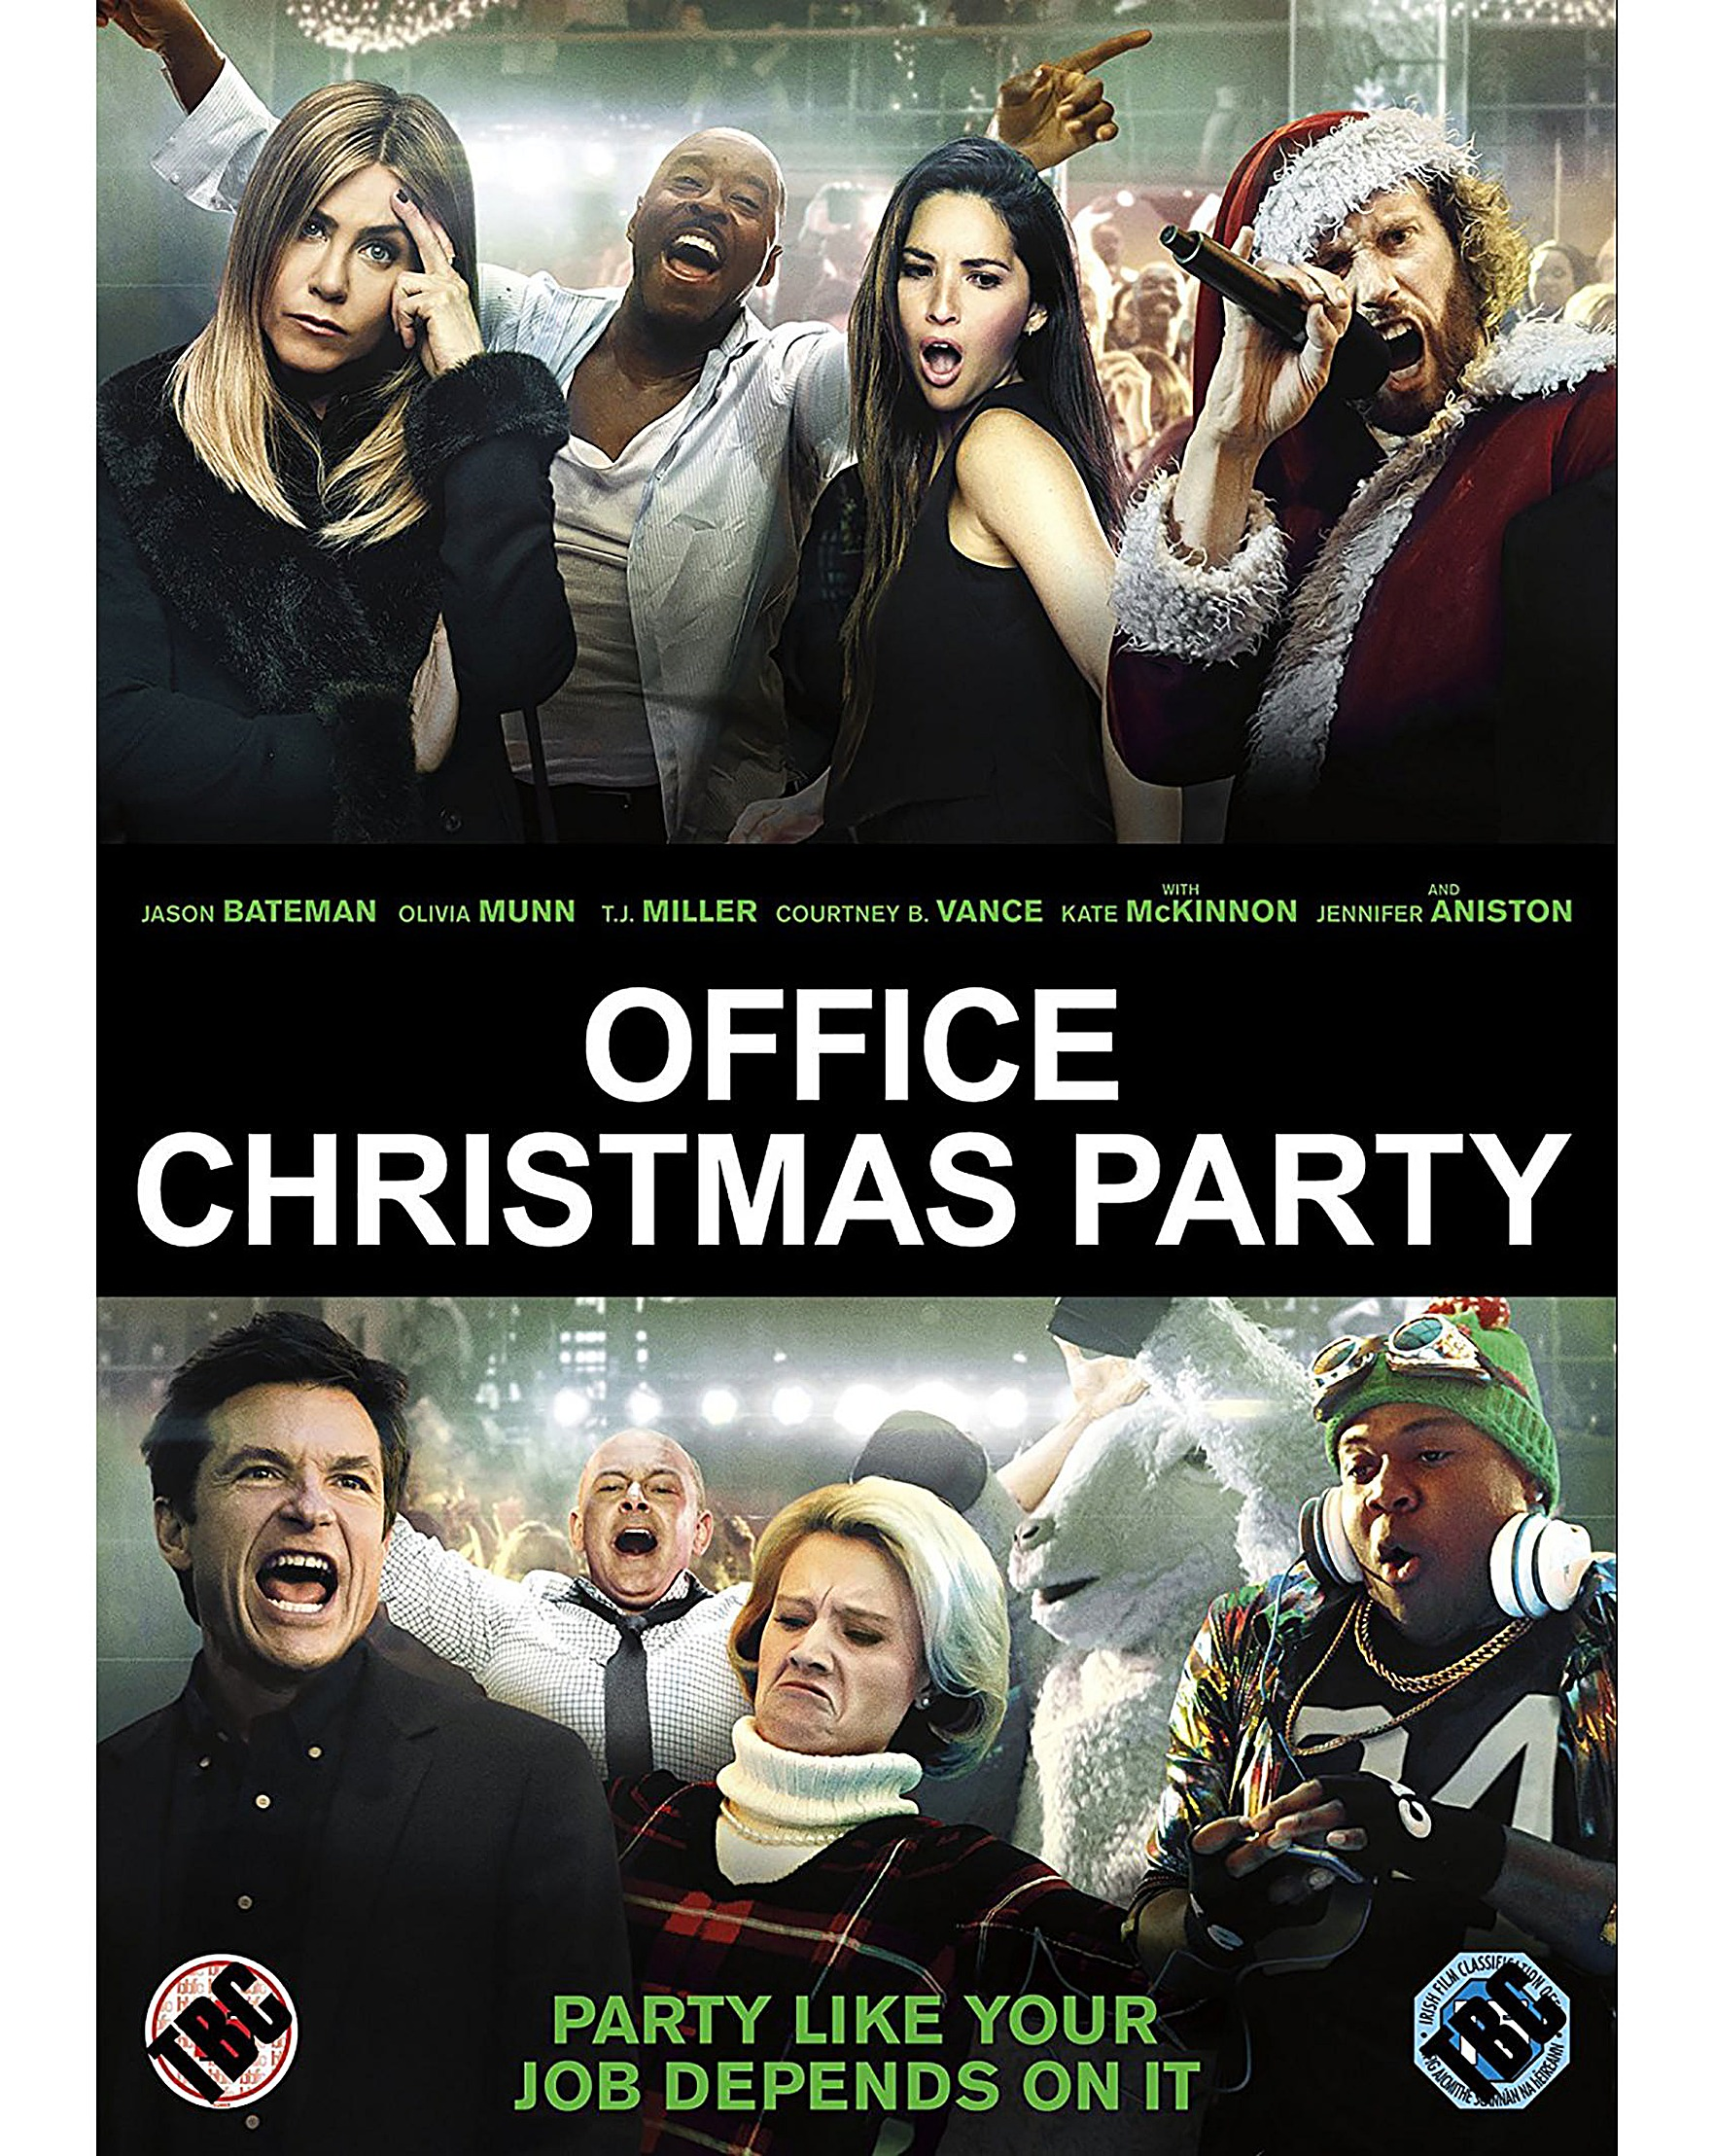 Office Christmas Party DVD | Ambrose Wilson